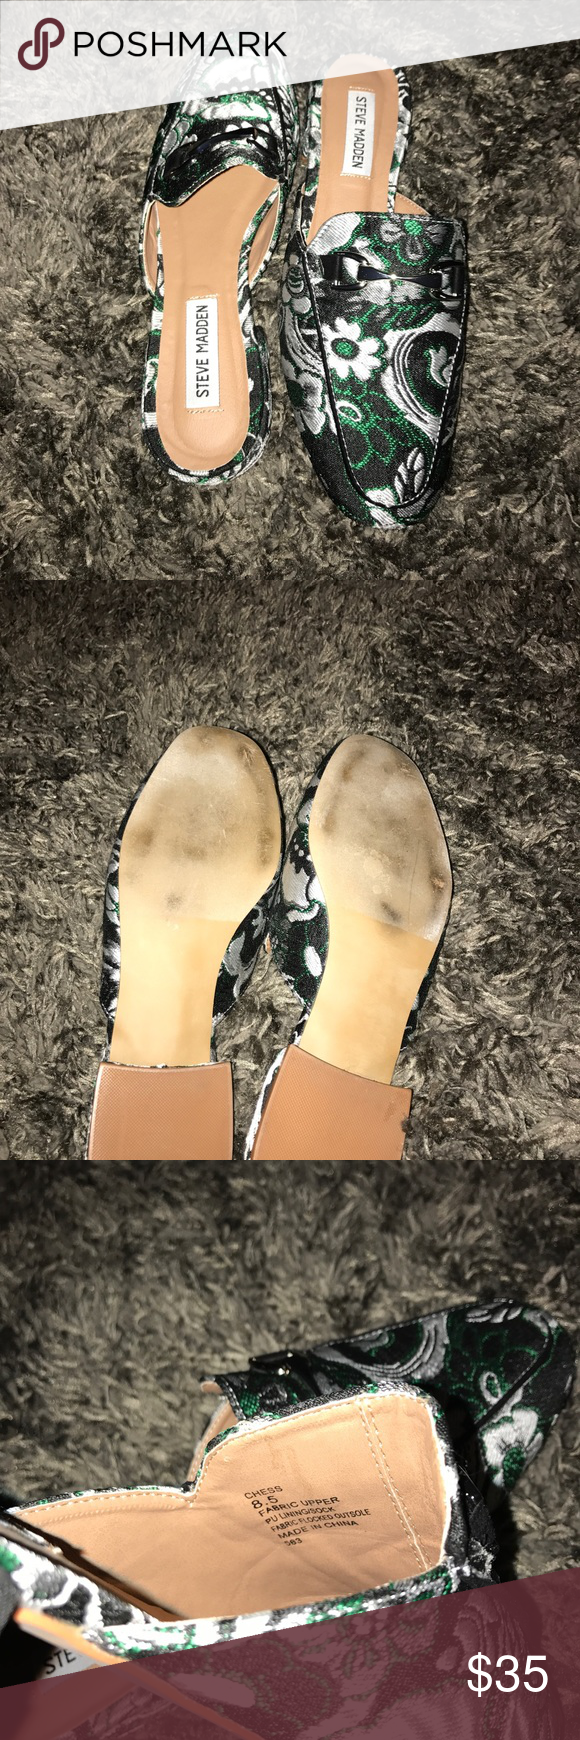 """Steve Madden Chess Mule DESCRIPTION  For a classic look that will make a statement, the brocade Chess mule from Steve Madden is a perfect pick. This jacquard slip-on flat will add some fun to any outfit!   Item # 391000 UPC # 661812502214 FEATURES  Floral jacquard canvas fabric upper Decorative metal bit detail Square toe ¾"""" covered block heel Synthetic sole Imported Steve Madden Shoes Mules & Clogs"""